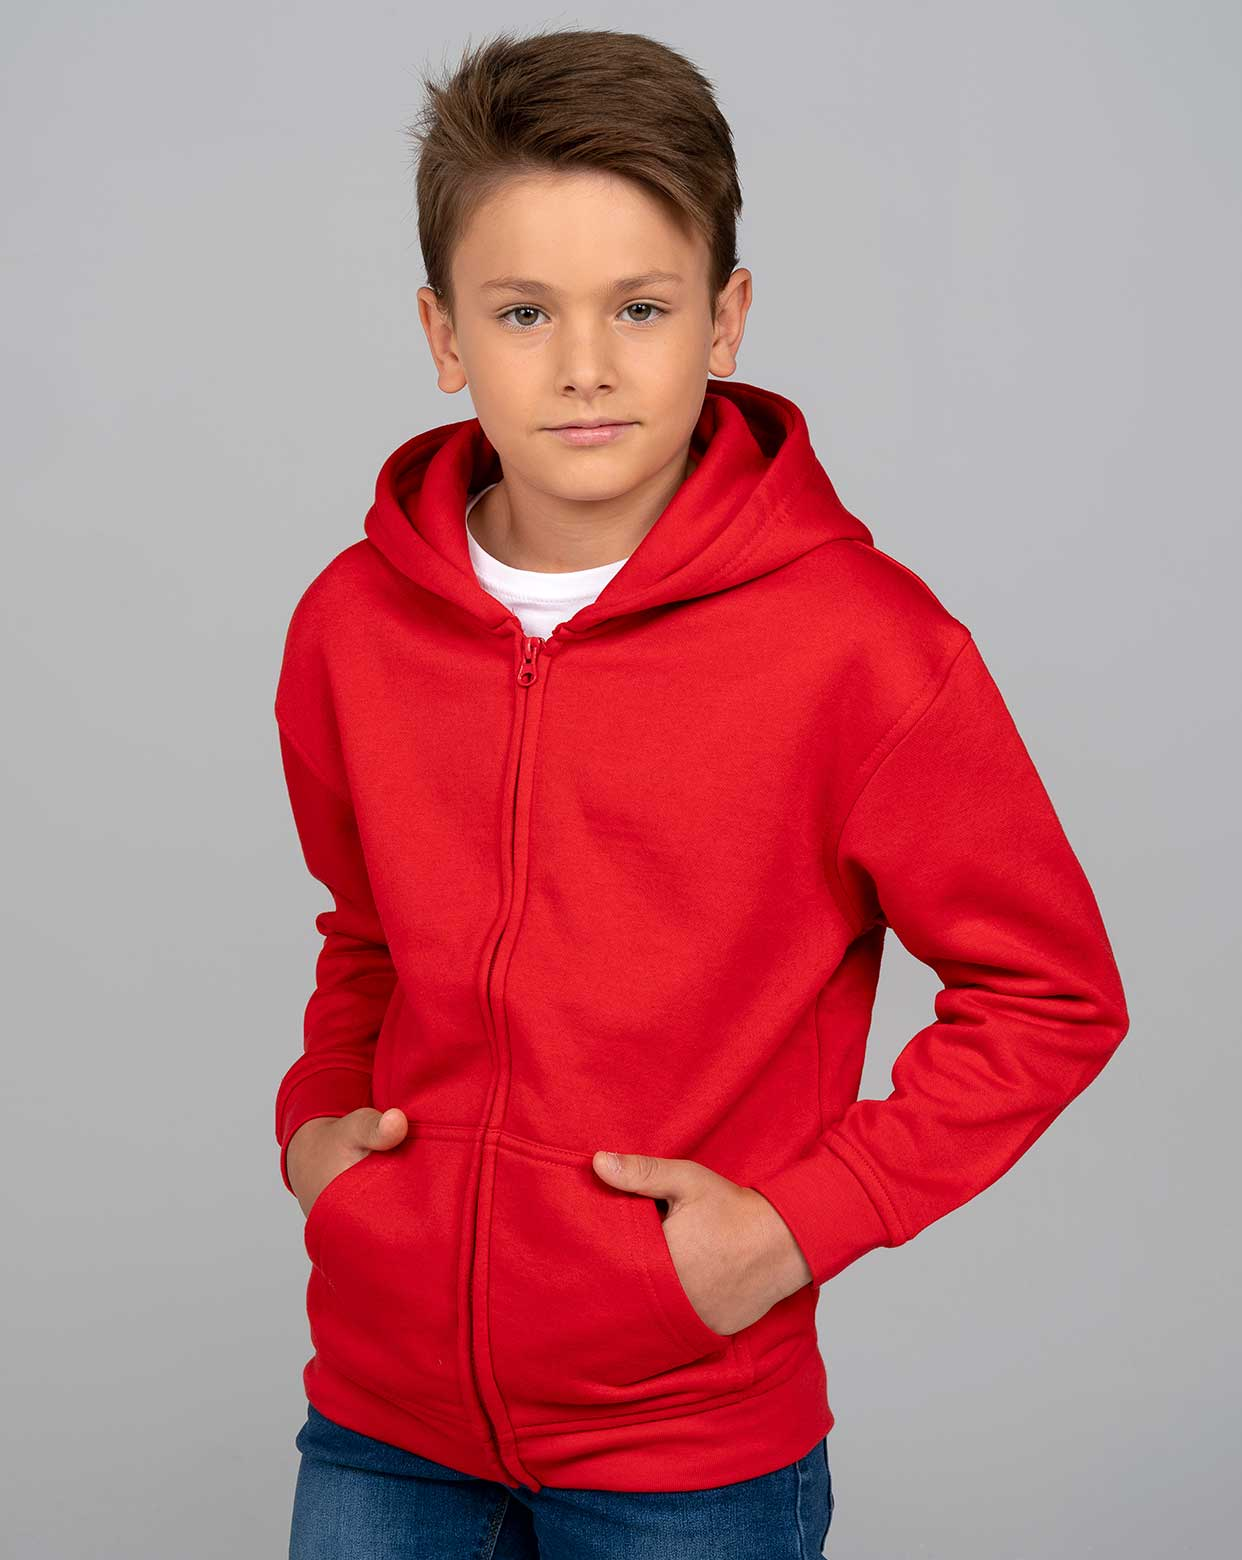 Kid Hooded Sweatshirt - SWRKHOOD